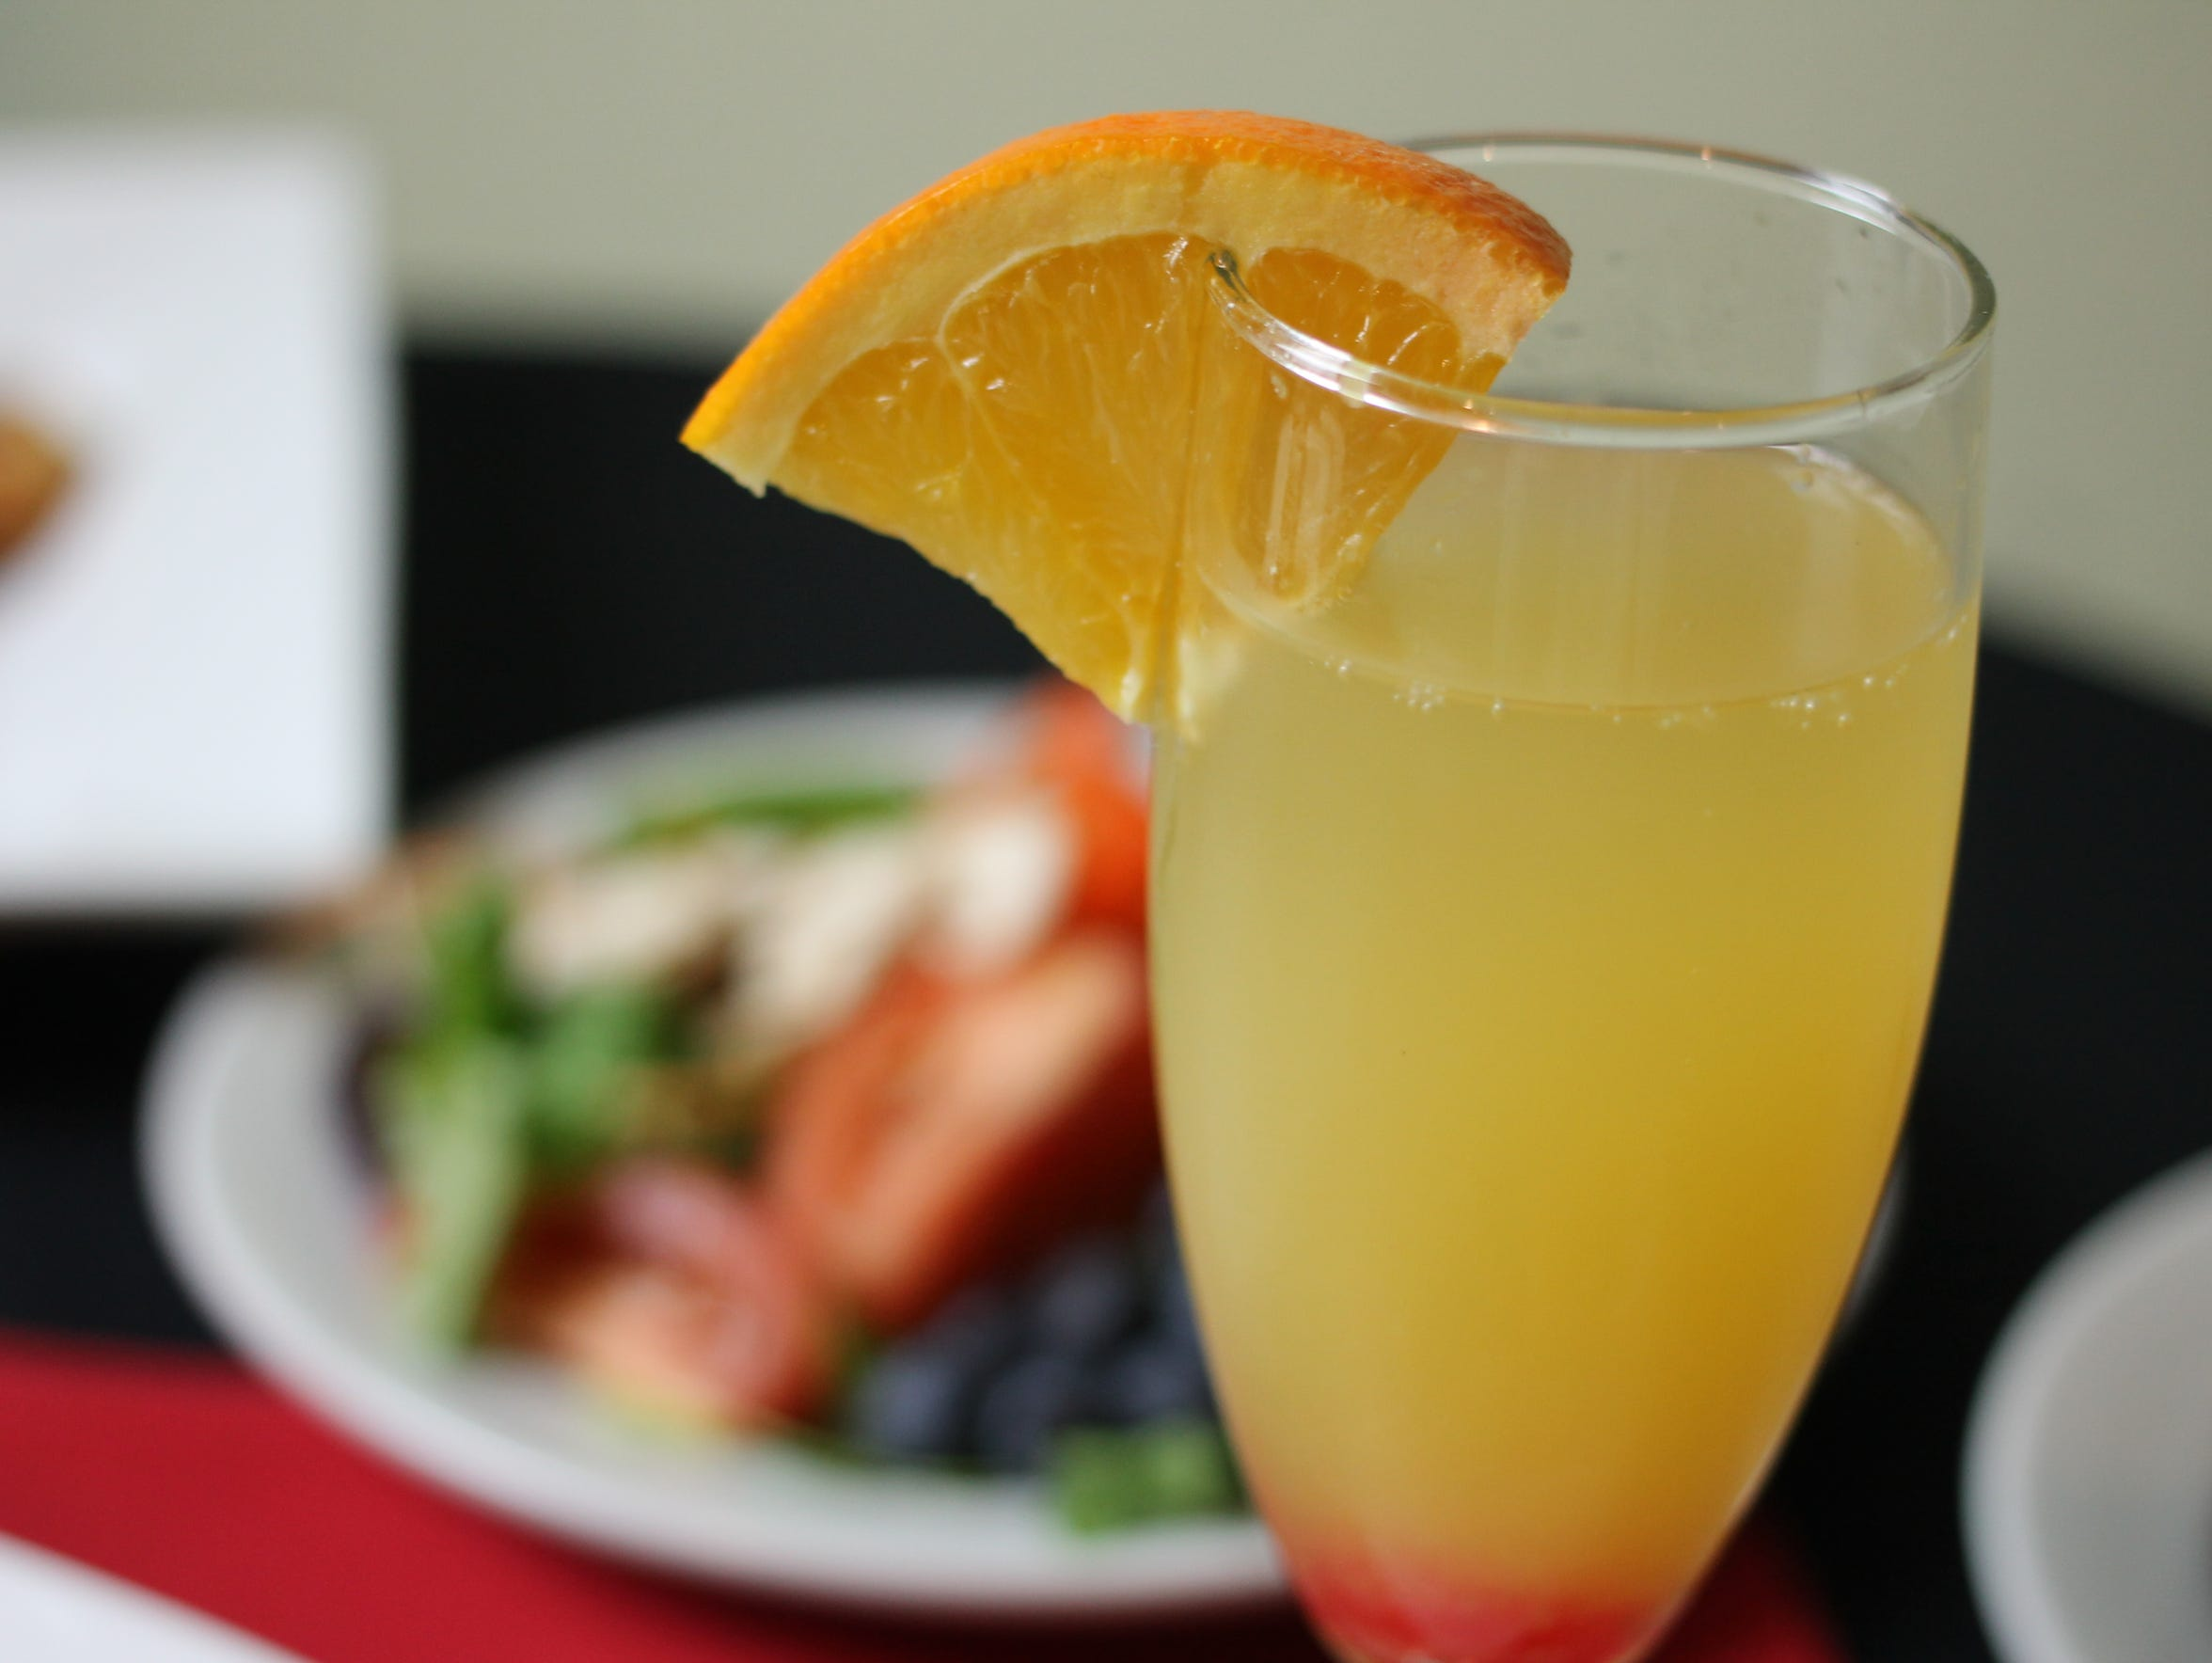 Mimosas are $1 during brunch at Ara's Restaurant, Banquet